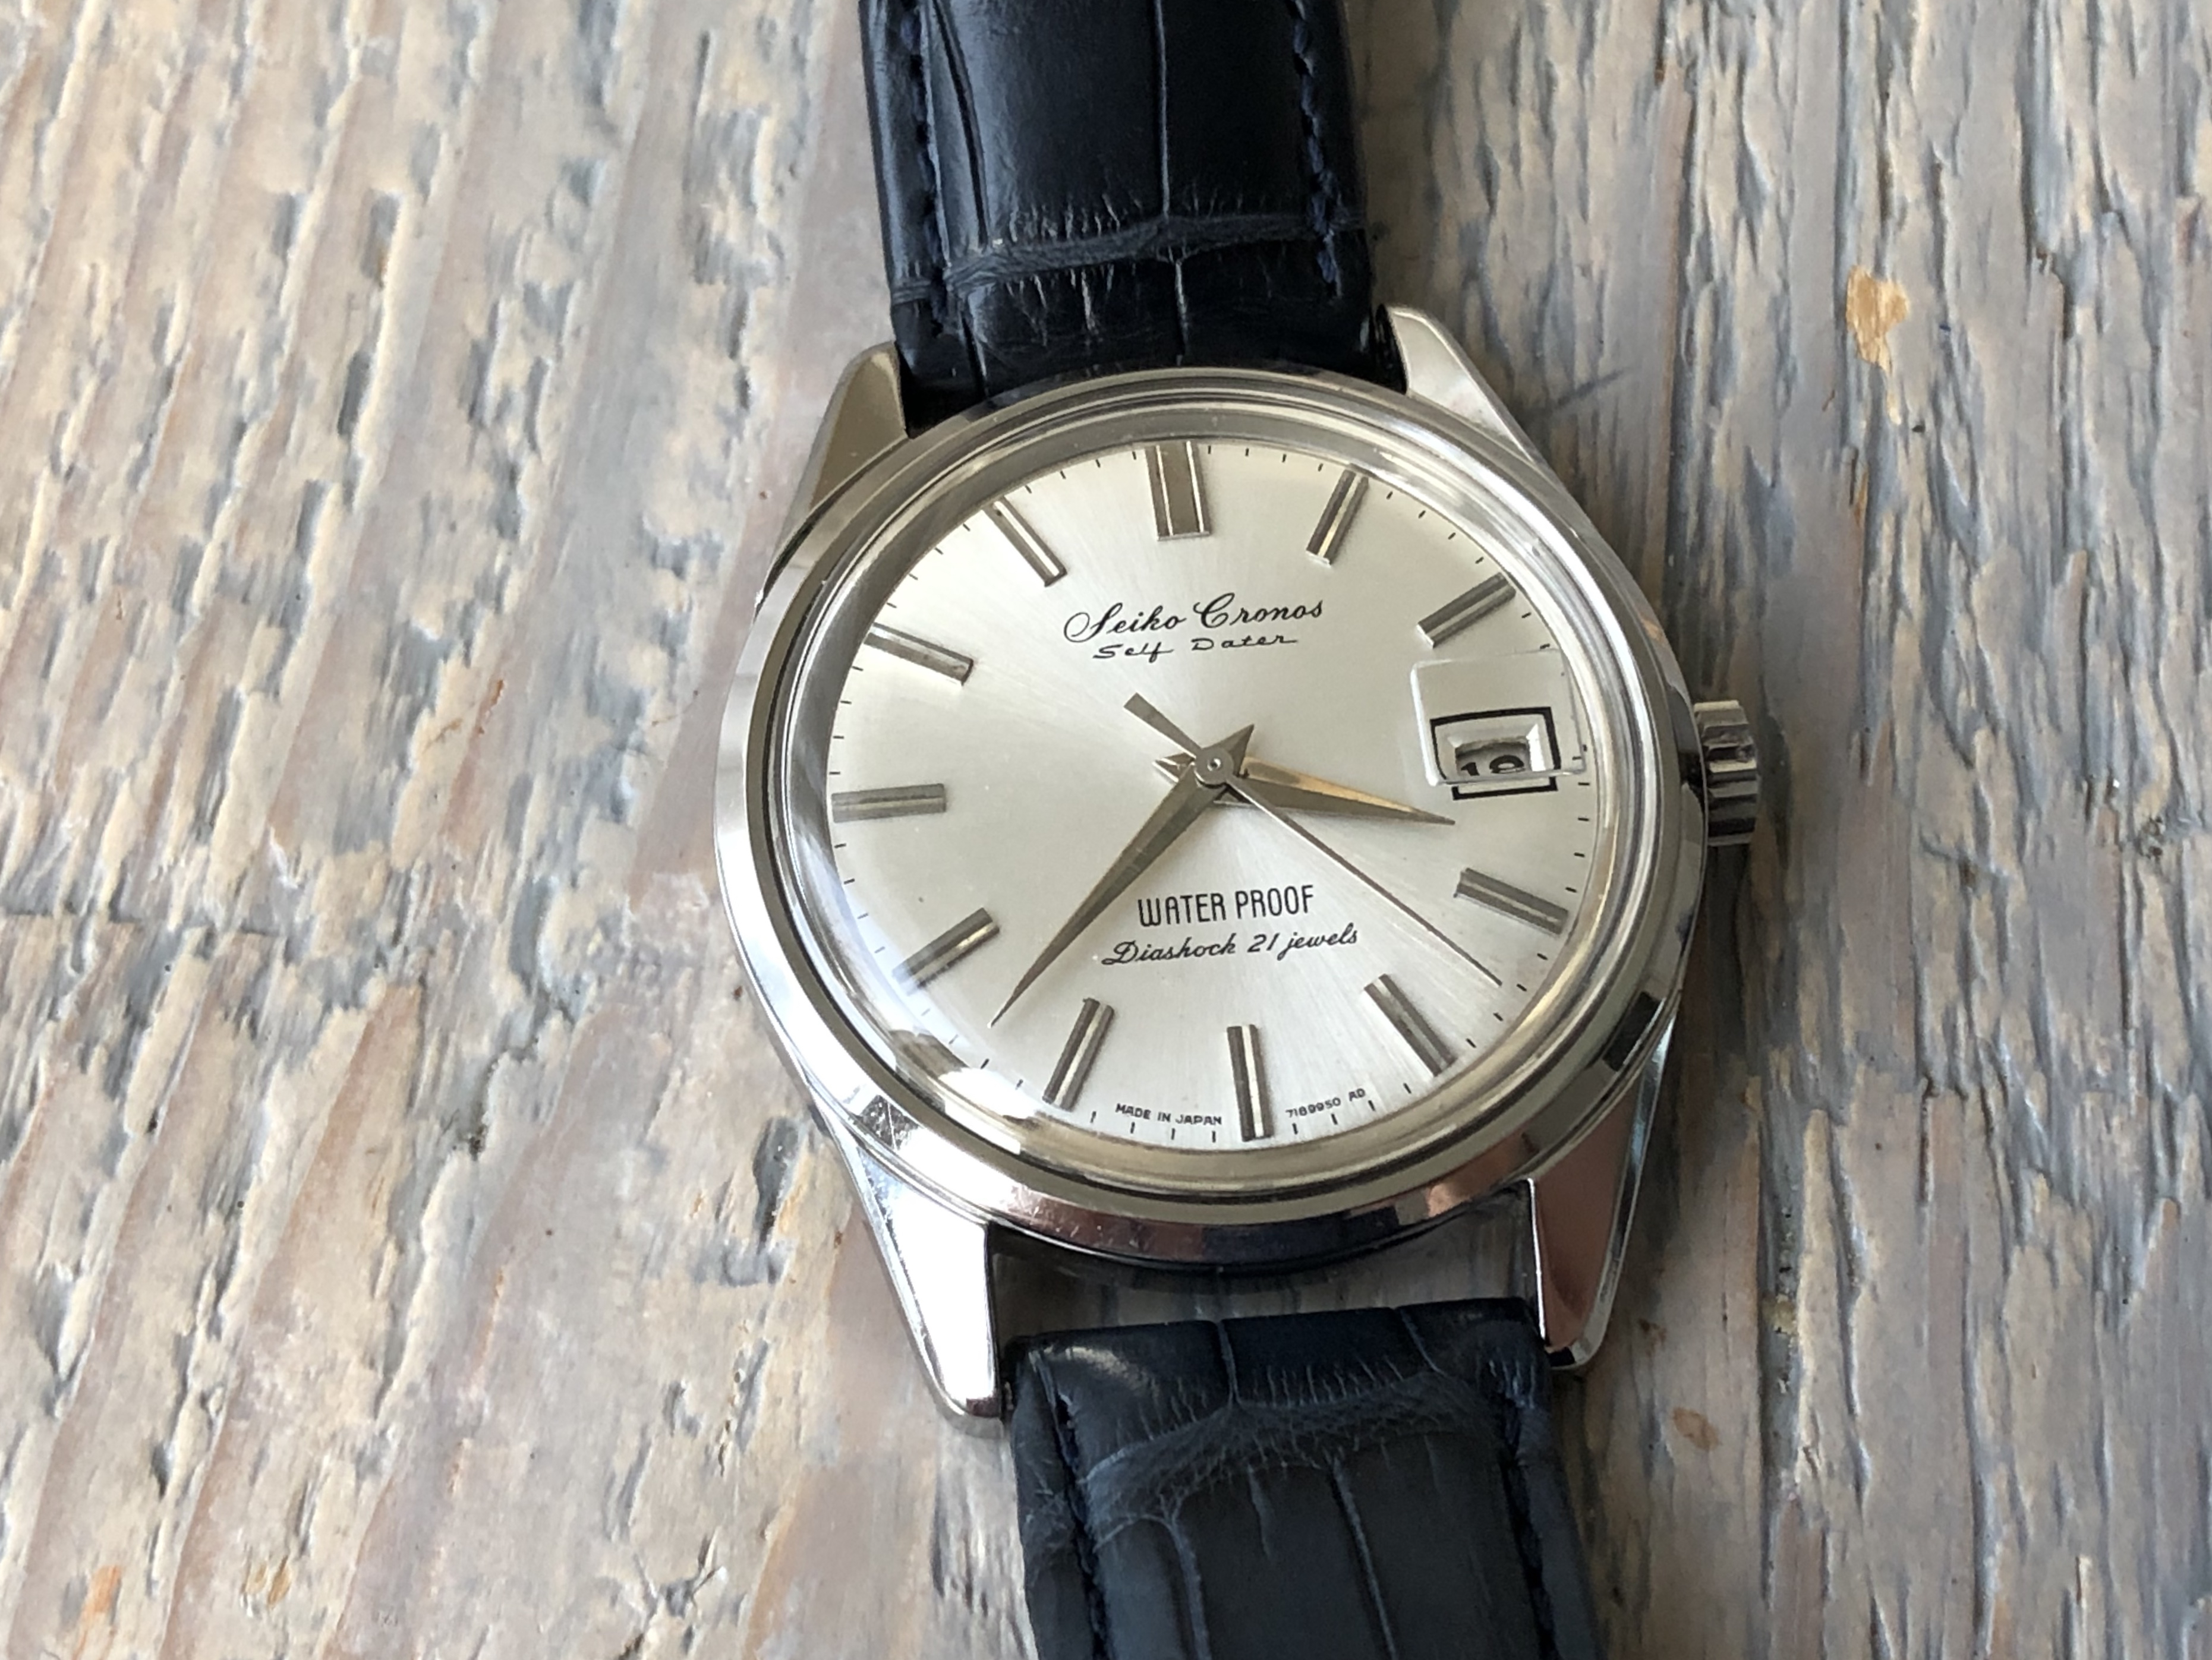 Seiko Cronos 54A (For sale) - not on this croc! Comes with basic strap.